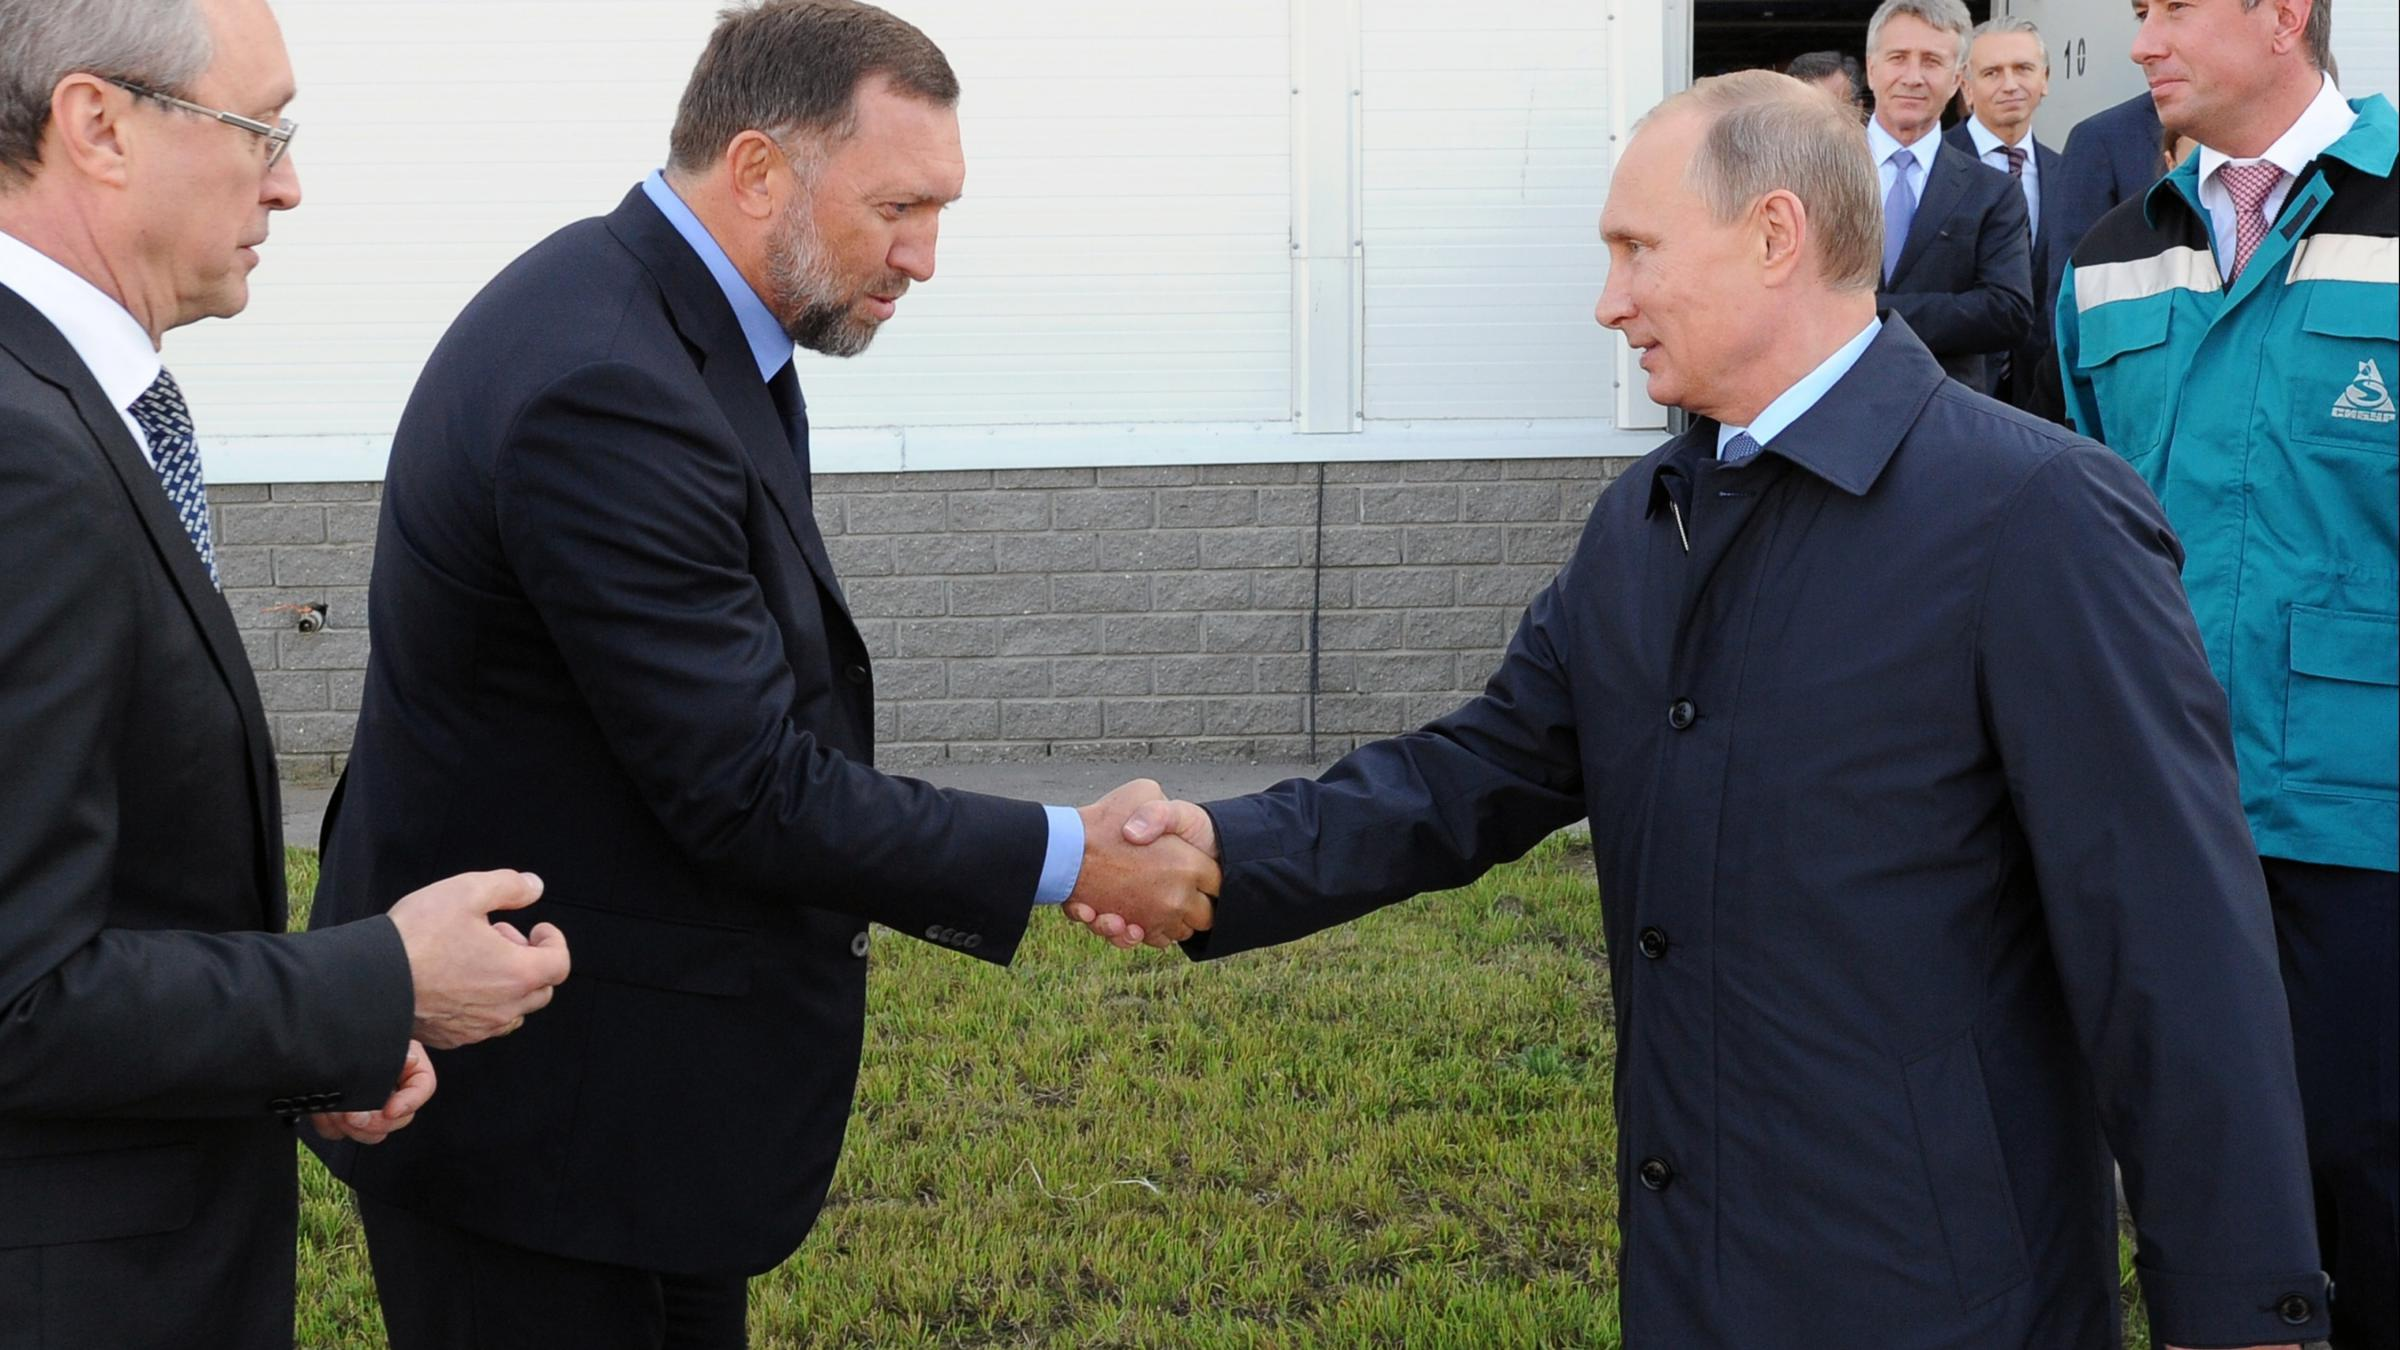 Russian businessman with ties to ex trump campaign official comes businessman oleg deripaska left greets russian president vladimir putin during a visit to a factory in russias nizhny novgorod region in september 2014 kristyandbryce Images